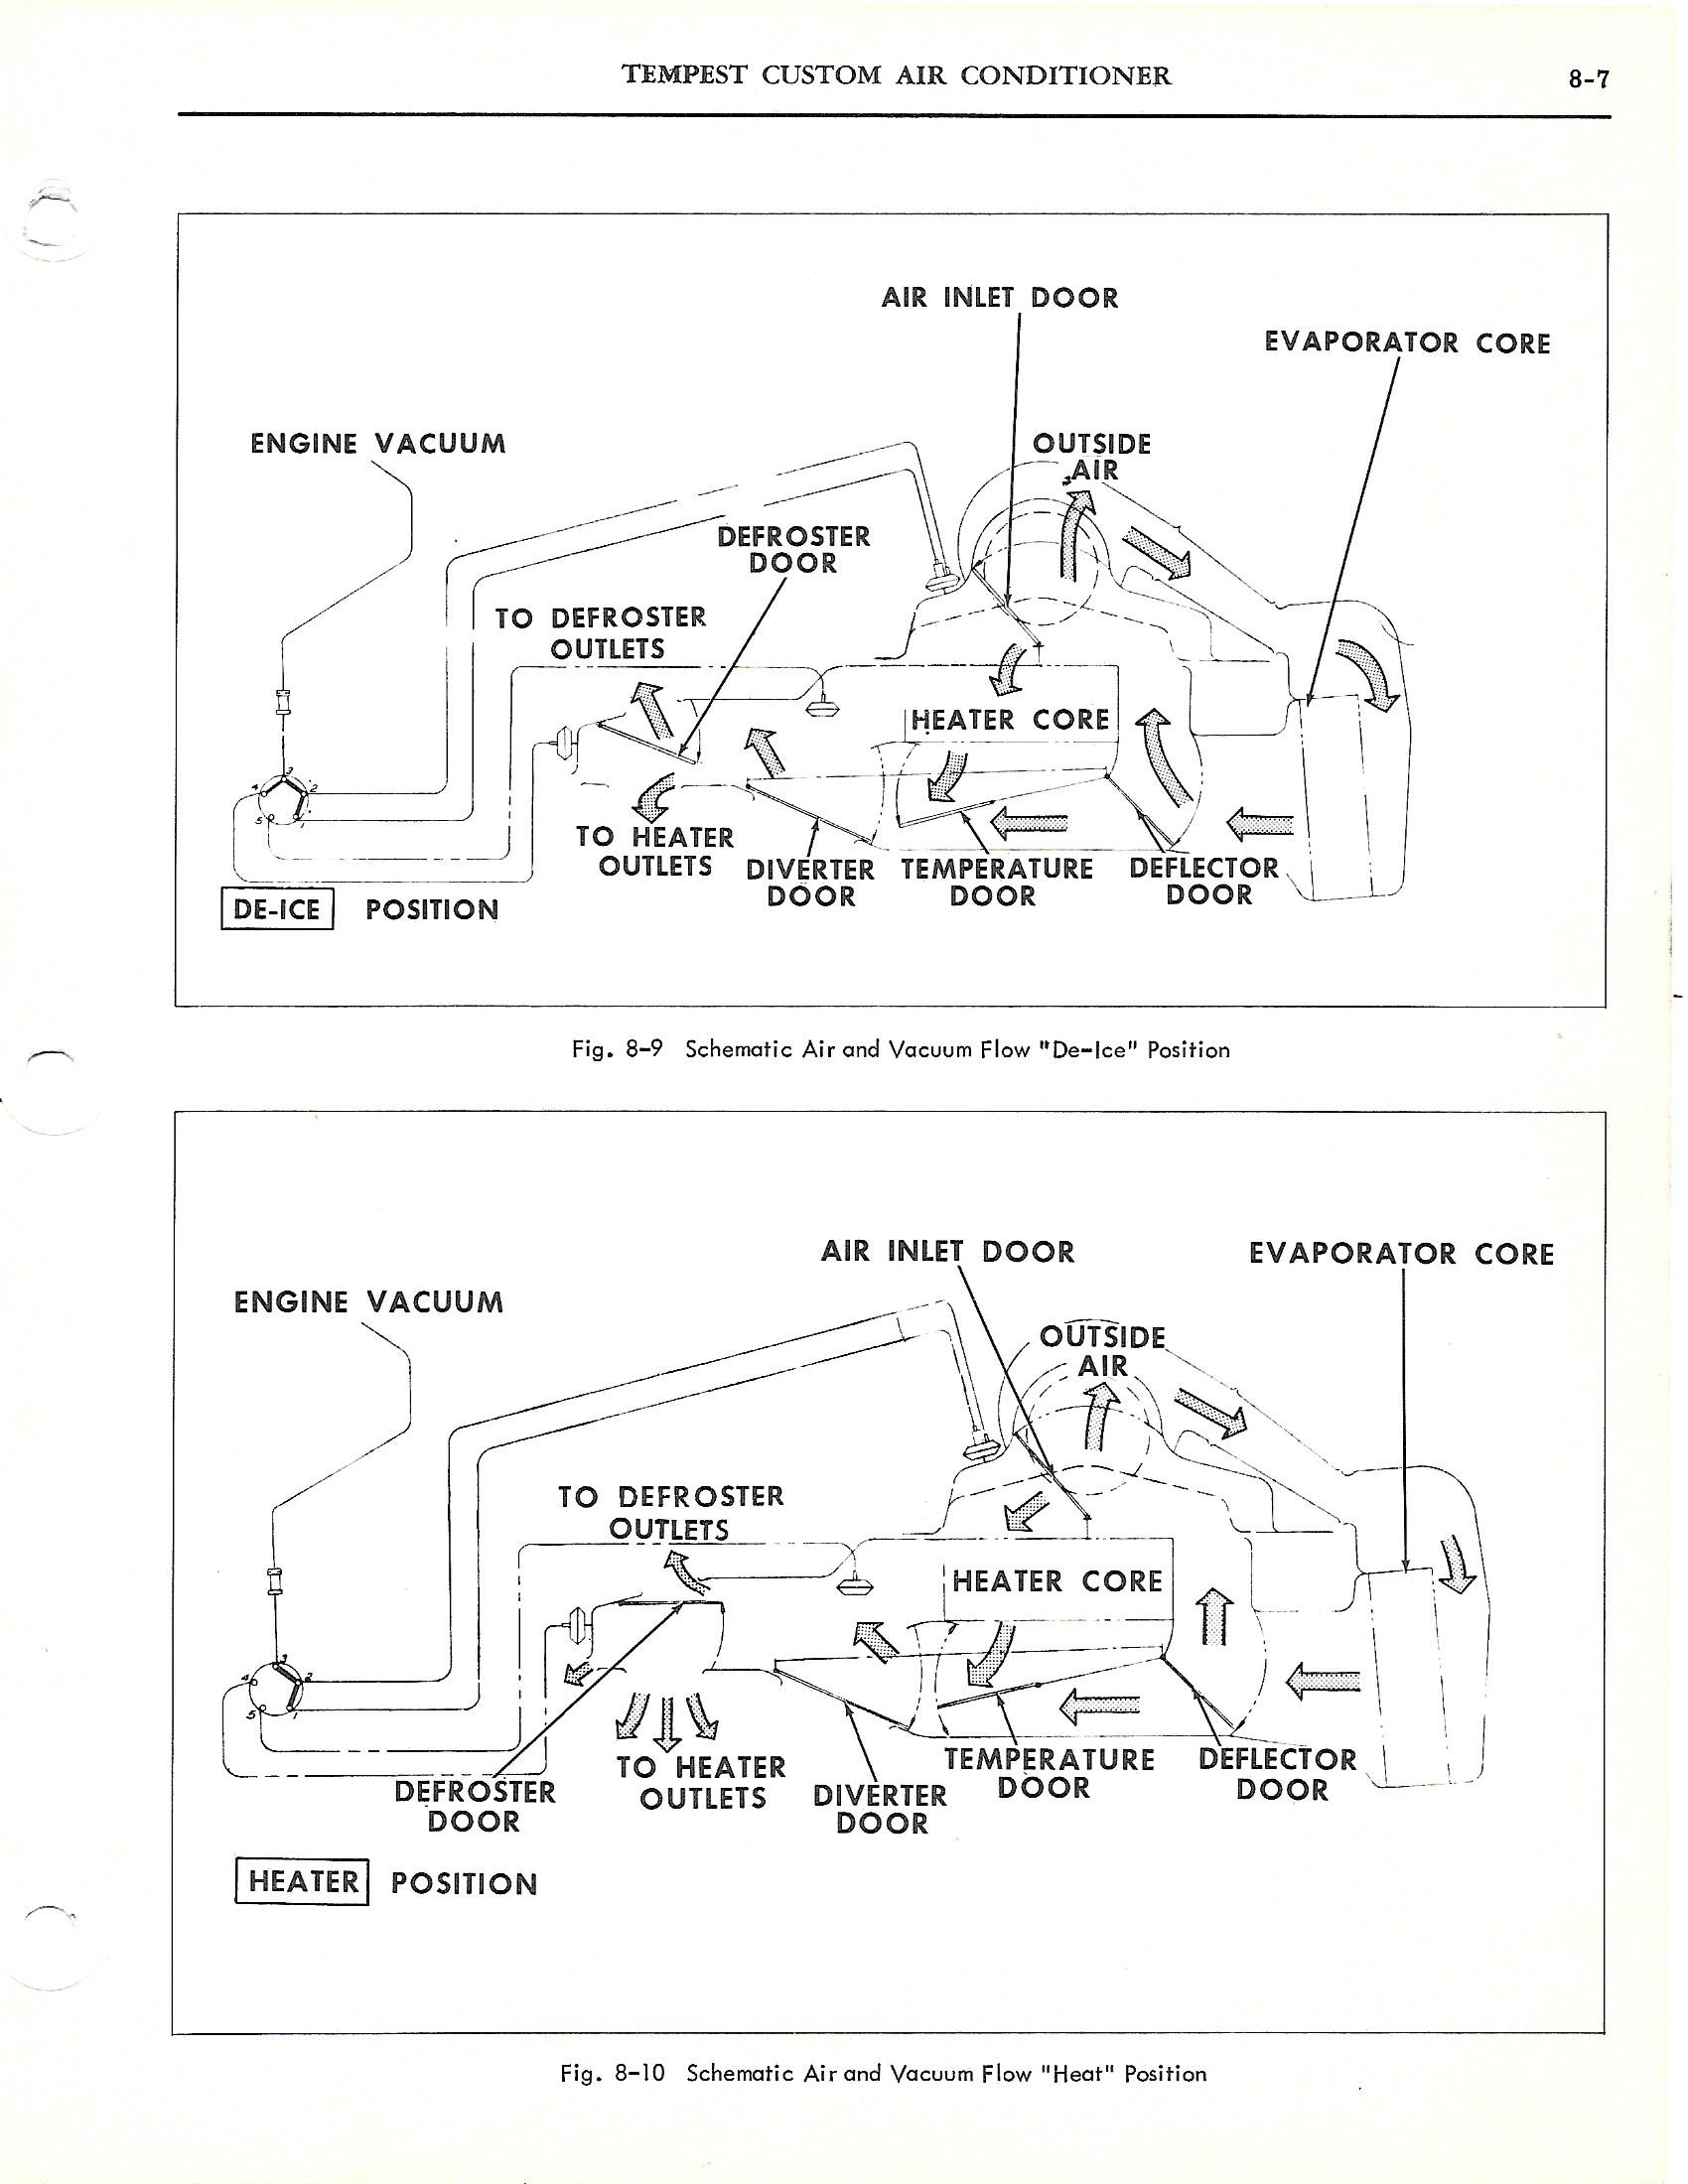 pontiac 2 2 engine diagram schematics 66 gto ac vacuum line diagram needed pontiac gto forum  66 gto ac vacuum line diagram needed